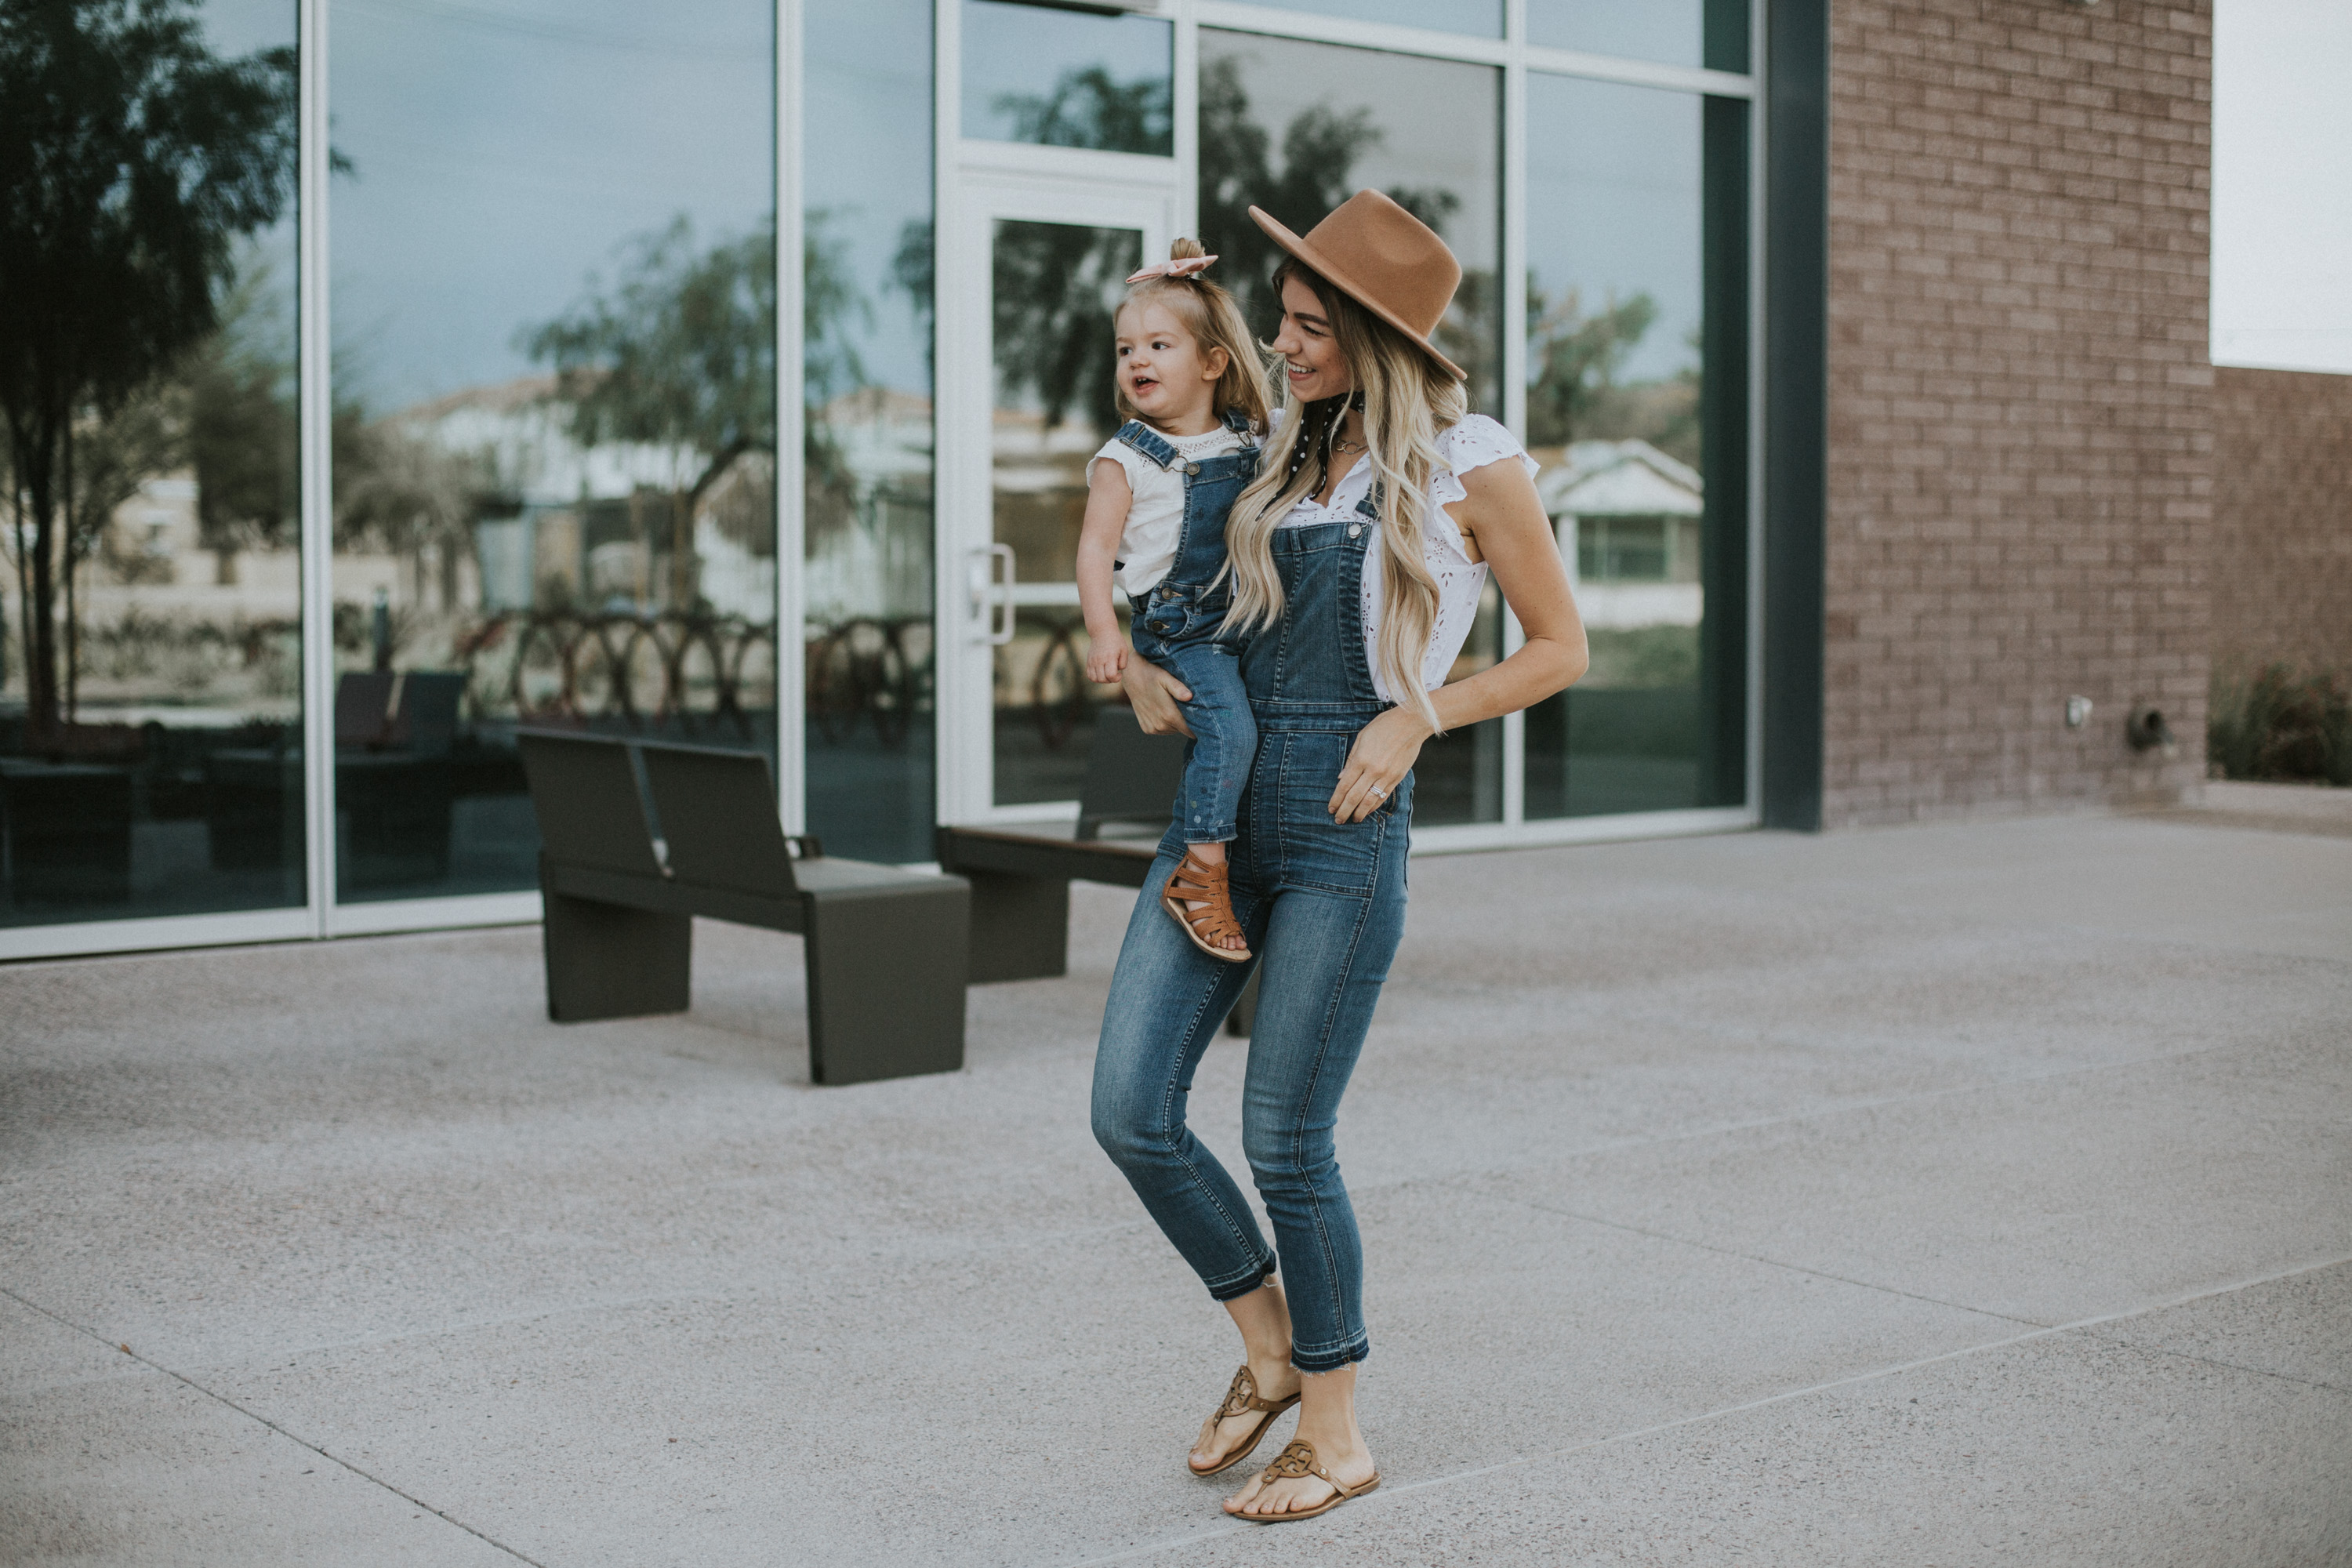 Fashion and style blogger Larissa of Living in Color blog shares an expert's tips on how to style overalls. Read more now.